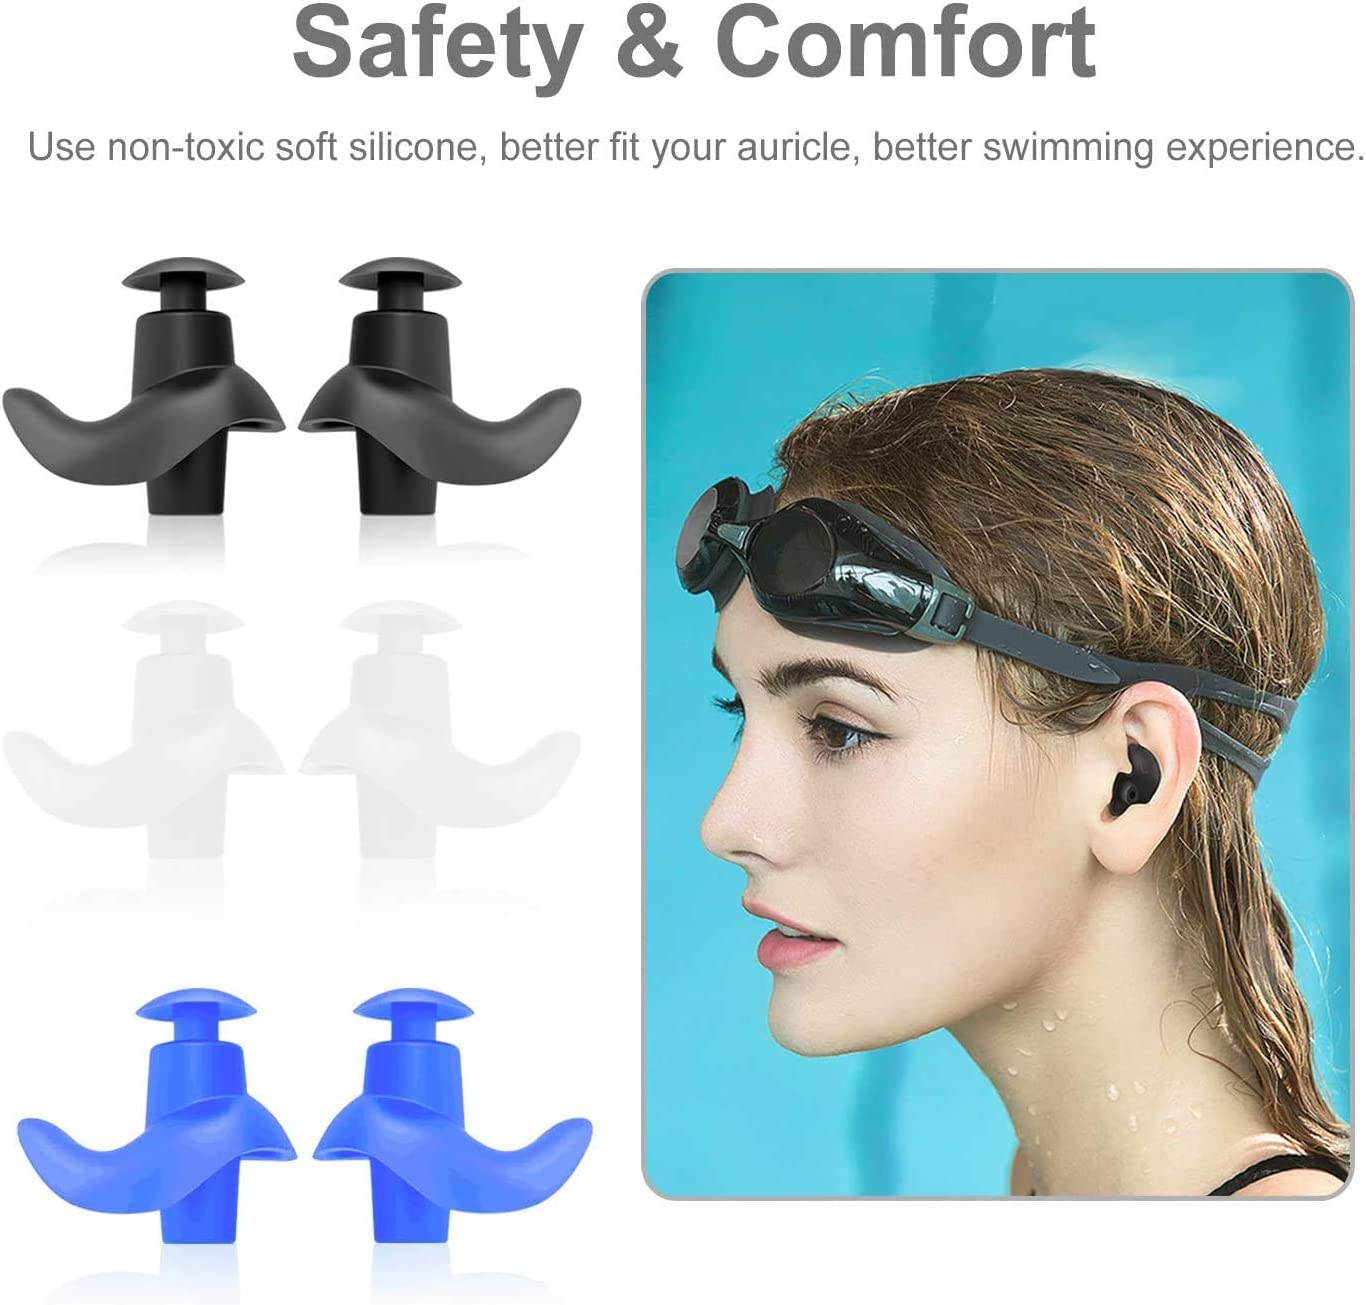 Swimming earplugs, 4 Pairs of Waterproof Reusable earplugs, Adult and Child Swimming earplugs, Swimming Bathing Surfing and Other Water Sports: Health & Personal Care